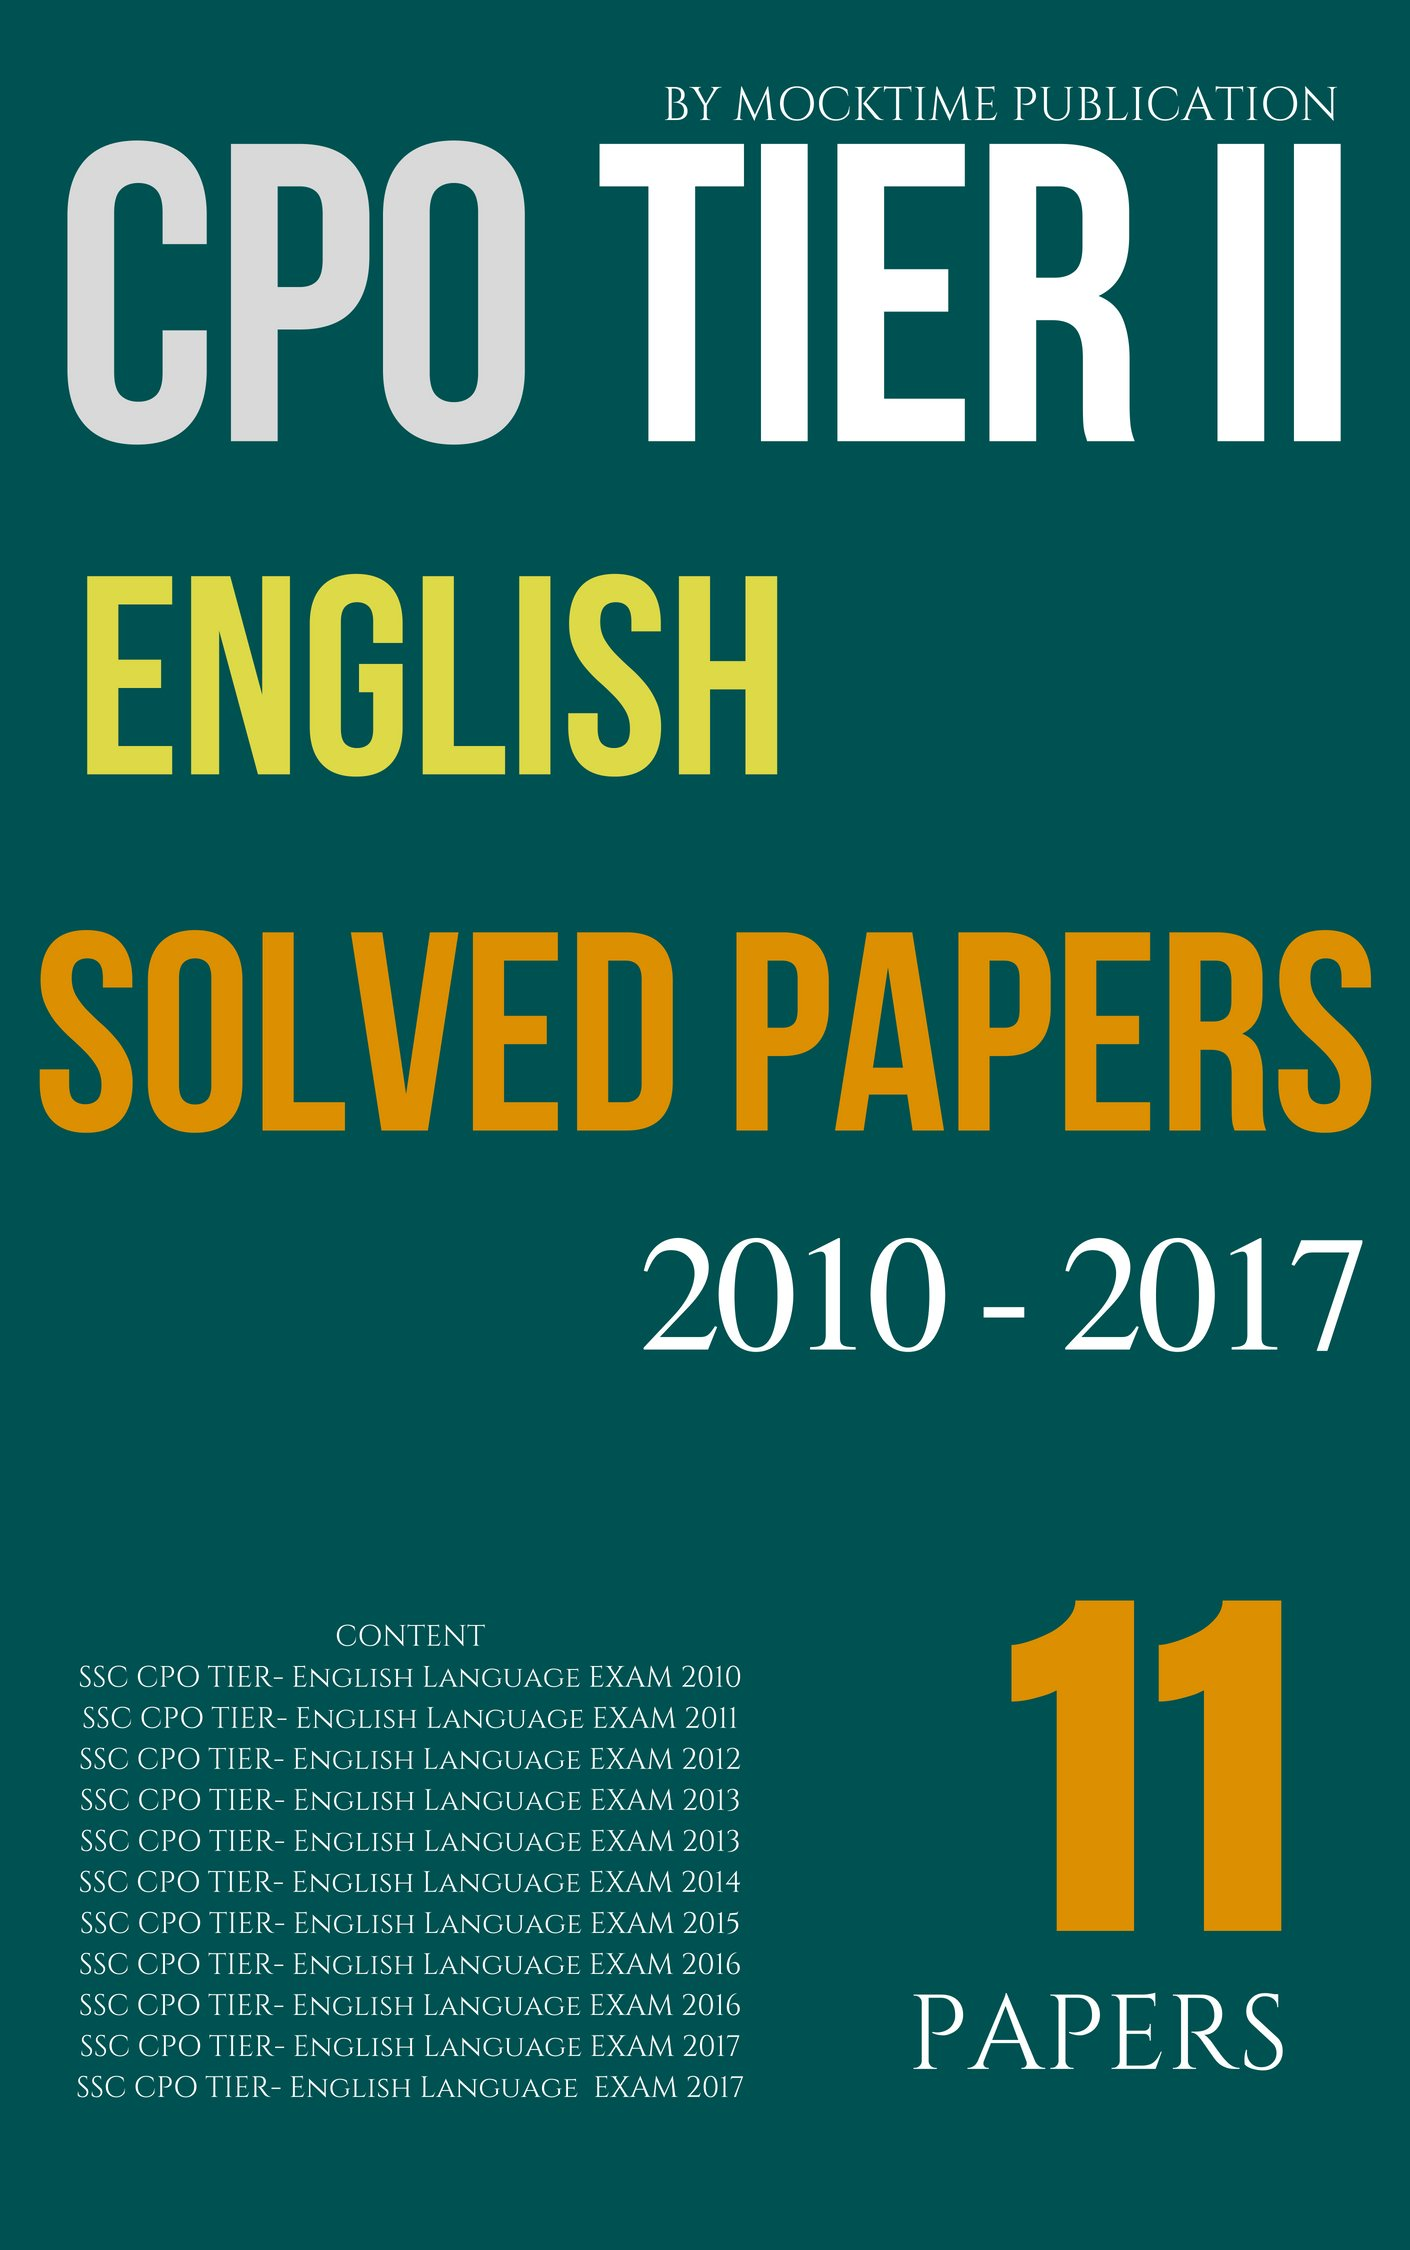 SSC CPO TIER II PAPERS ENGLISH SOLVED 2010 - 2017 Tier-2: for Central Police Organisation CAPF BSF/CISF/ITBP/Delhi Poice SI Sub inspector Exam